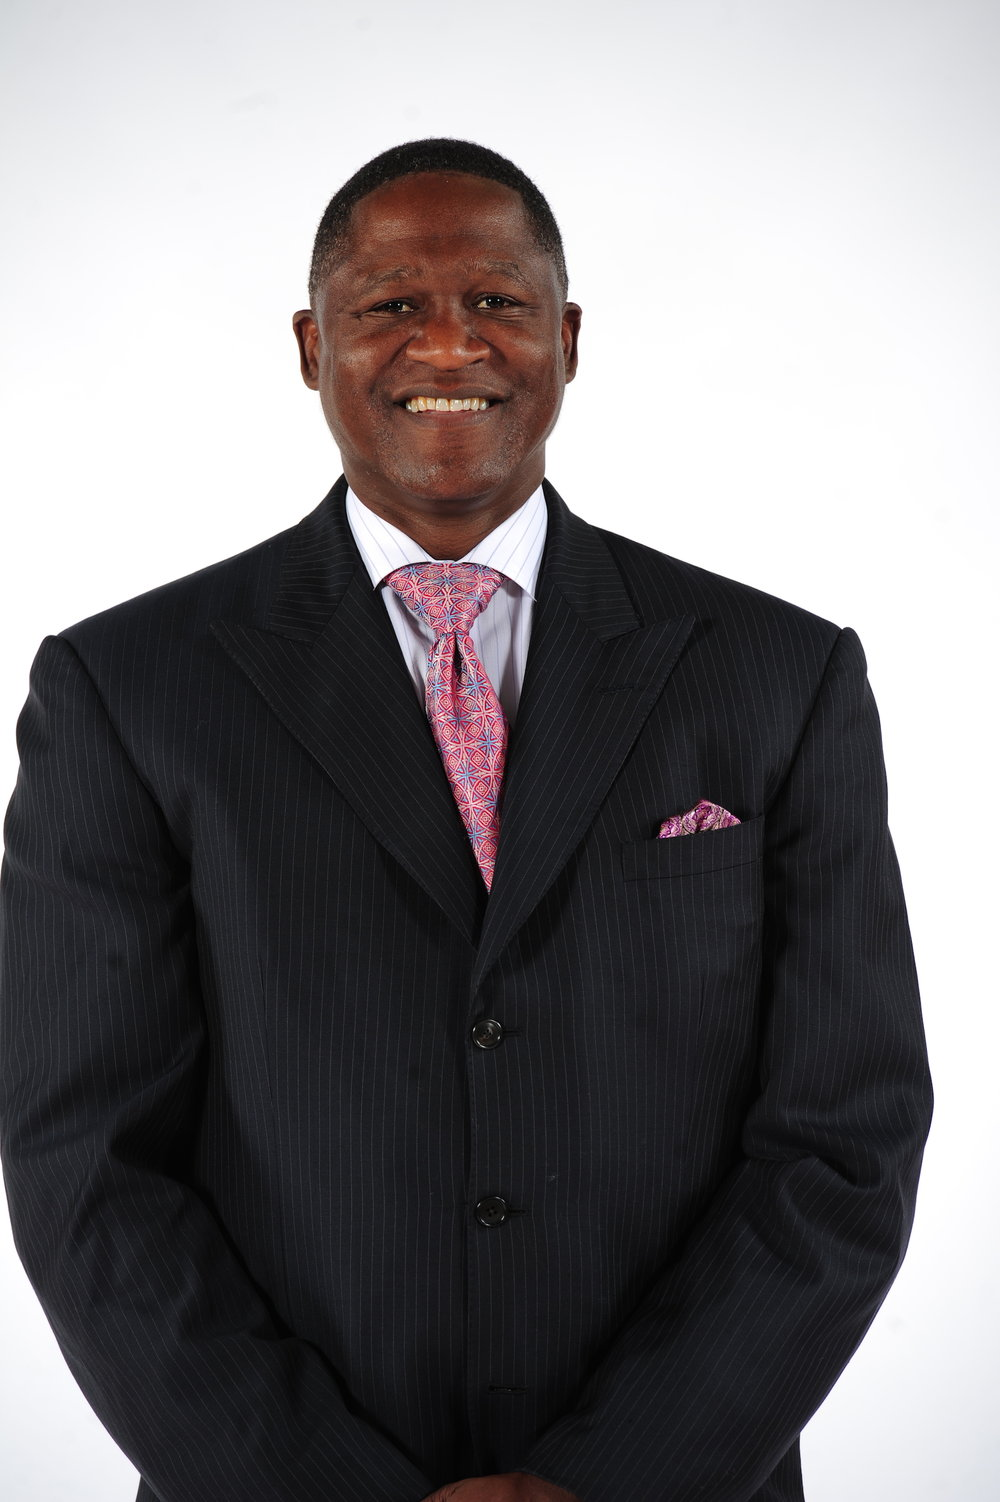 "The most celebrated player to ever put on a Hawks uniform and represented in front of Philips Arena by an 18,500-pound bronze statue erected in March, 2015, Hall-of-Famer Dominique Wilkins is the Hawks' Vice President of Basketball and Special Advisor to the CEO. Wilkins works in various management functions within the organization's basketball and business areas, and as the team's analyst for the Hawks broadcasts on FOX Sports Southeast. Wilkins is responsible for advising the senior management team on basketball-related issues and working as a strong voice in the community. The 6-8 forward, who concluded his NBA career with 26,668 points, is the 13th all-time leading scorer in league history and his 24.8 career scoring average is tied for 13th on the all-time charts. Wilkins' 23,292 points with the Hawks are the franchise's best, and he ranks second in team history in steals (1,245), fourth in rebounds (6,119), seventh in blocked shots (588) and eighth in assists (2,321). One of league's true marquee players, his outstanding contributions on the court were recognized by the organization in January 2001 when he became the third player in club history to have his uniform number (#21) retired, joining Hawks legends Bob Pettit and Lou Hudson. Familiar to area sports fans from his collegiate days at the University of Georgia, Wilkins entered the 1982 NBA Draft after his junior season with the Bulldogs. He ended his Georgia career as the school's all-time scoring leader with averages of 21.6 points to go along with his 7.5 rebounds. A three-time All-SEC performer who also took home the Most Valuable Player award from the 1981 Southeastern Conference tournament, he was selected with the third overall pick in the first round by the Utah Jazz. Hawks officials valued his talents enough to send two players (John Drew and Freeman Williams) and cash to the Utah Jazz on September 2, 1982 for his draft rights, and the end result was beneficial for both parties. Wilkins was able to continue his career in front of familiar faces, and Atlanta had its first superstar since Pete Maravich. Instrumental in the team's success in the mid-to-late '80s, Wilkins electrified Atlanta sports fans as the club recorded 50-win seasons four straight times from 1985-86 to 1988-89. He averaged 29.1 points over that period, and in the 1988 All-Star Game he ripped the nets for 29 points in 30 minutes of action. Wilkins led the Hawks to the playoffs in eight of his 12 seasons with the Hawks, his finest hour came during the 1988 postseason when Atlanta narrowly missed reaching the Eastern Conference Finals, as the Boston Celtics eked out a two-point victory in Game 7 of the conference semifinals. Wilkins averaged 31.2 points in 12 playoff contests that year, and having participated in 10 years of playoff competition, scored 25.4 points per game. After missing only 18 of a possible 738 regular season games his first nine years, Wilkins suffered a season-ending tear of Achilles tendon midway through the 1991-92 season. Wilkins responded the next season by scoring 29.9 points per game to finish second to Michael Jordan for the league scoring title. He was a member of the NBA All-Rookie Team in 1983 and was named to seven All-NBA teams, nine consecutive all-star squads and was a two-time winner of the NBA Slam Dunk Championship (1985 and 1990). On November 6, 1992 against the New York Knicks, a patented baseline jumper led to Wilkins becoming the 17th person in league history to join the 20,000-point club, and later that season (February 2, 1993 against Seattle), he supplanted Pettit as the franchise's all-time leading scorer. His stellar career in Atlanta came to an end on February 24, 1994 when he was traded to the Los Angeles Clippers. At the conclusion of the year, Wilkins decided to test the free agent market and signed with the Boston Celtics. Wilkins joined Panathinaikos Athens of the Greek League the following season (1995-96). He was named MVP of the European Final Four after averaging 20.9 points and 7.0 rebounds and leading the team to the European Men's Championship. Seeking a return to the States, Wilkins signed a free agent contract with San Antonio and provided more than the Spurs possibly imagined, leading the Spurs in scoring with an 18.2 average and grabbing 6.4 rebounds. He returned overseas for the 1997-98 campaign, signing with Italy's Teamsystem before rejoining the NBA for his final professional season (1998-99), as Wilkins saw action in 27 games for the Orlando Magic. Extremely active with local and national charity endeavors, Wilkins has done work with the Juvenile Diabetes Research Foundation, Cystic Fibrosis Foundation, Special Olympics, Muscular Dystrophy Association and American Lung Association. In July 2007, Wilkins launched ""Nique and Newt's Full- Court Press on Diabetes"" with former Speaker of the United States House of Representatives, Newt Gingrich. In March 2010, Wilkins was honored by the Georgia State Legislature as they presented a State Resolution naming him the Diabetes Ambassador for the state of Georgia. He is also a diabetes ambassador for Novo Nordisk, a world leader in Diabetes care. Wilkins, 57, was born on January 12, 1960 in Paris, France. He joined basketball's immortals with his entry into the Naismith Memorial Basketball Hall of Fame on September 8, 2006, was inducted into the Georgia Sports Hall of Fame on April 3, 2004, the Atlanta Sports Hall of Fame's inaugural class on June 10, 2005 and the National Collegiate Basketball Hall of Fame on November 18, 2016. Wilkins was honored in October 2011 with his induction into the Boys & Girls Clubs of America Alumni Hall of Fame."